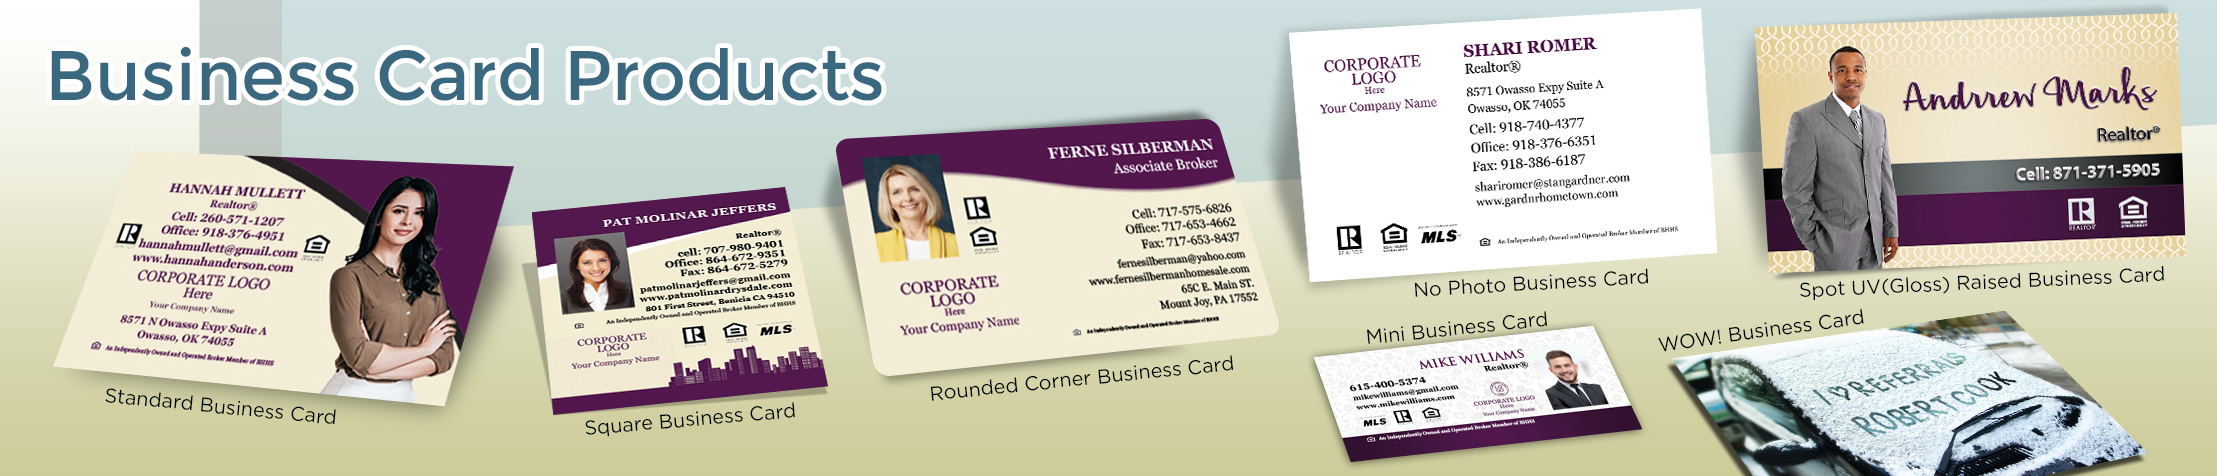 Berkshire Hathaway Real Estate Business Card Products - Berkshire Hathaway  - Unique, Custom Business Cards Printed on Quality Stock with Creative Designs for Realtors | BestPrintBuy.com